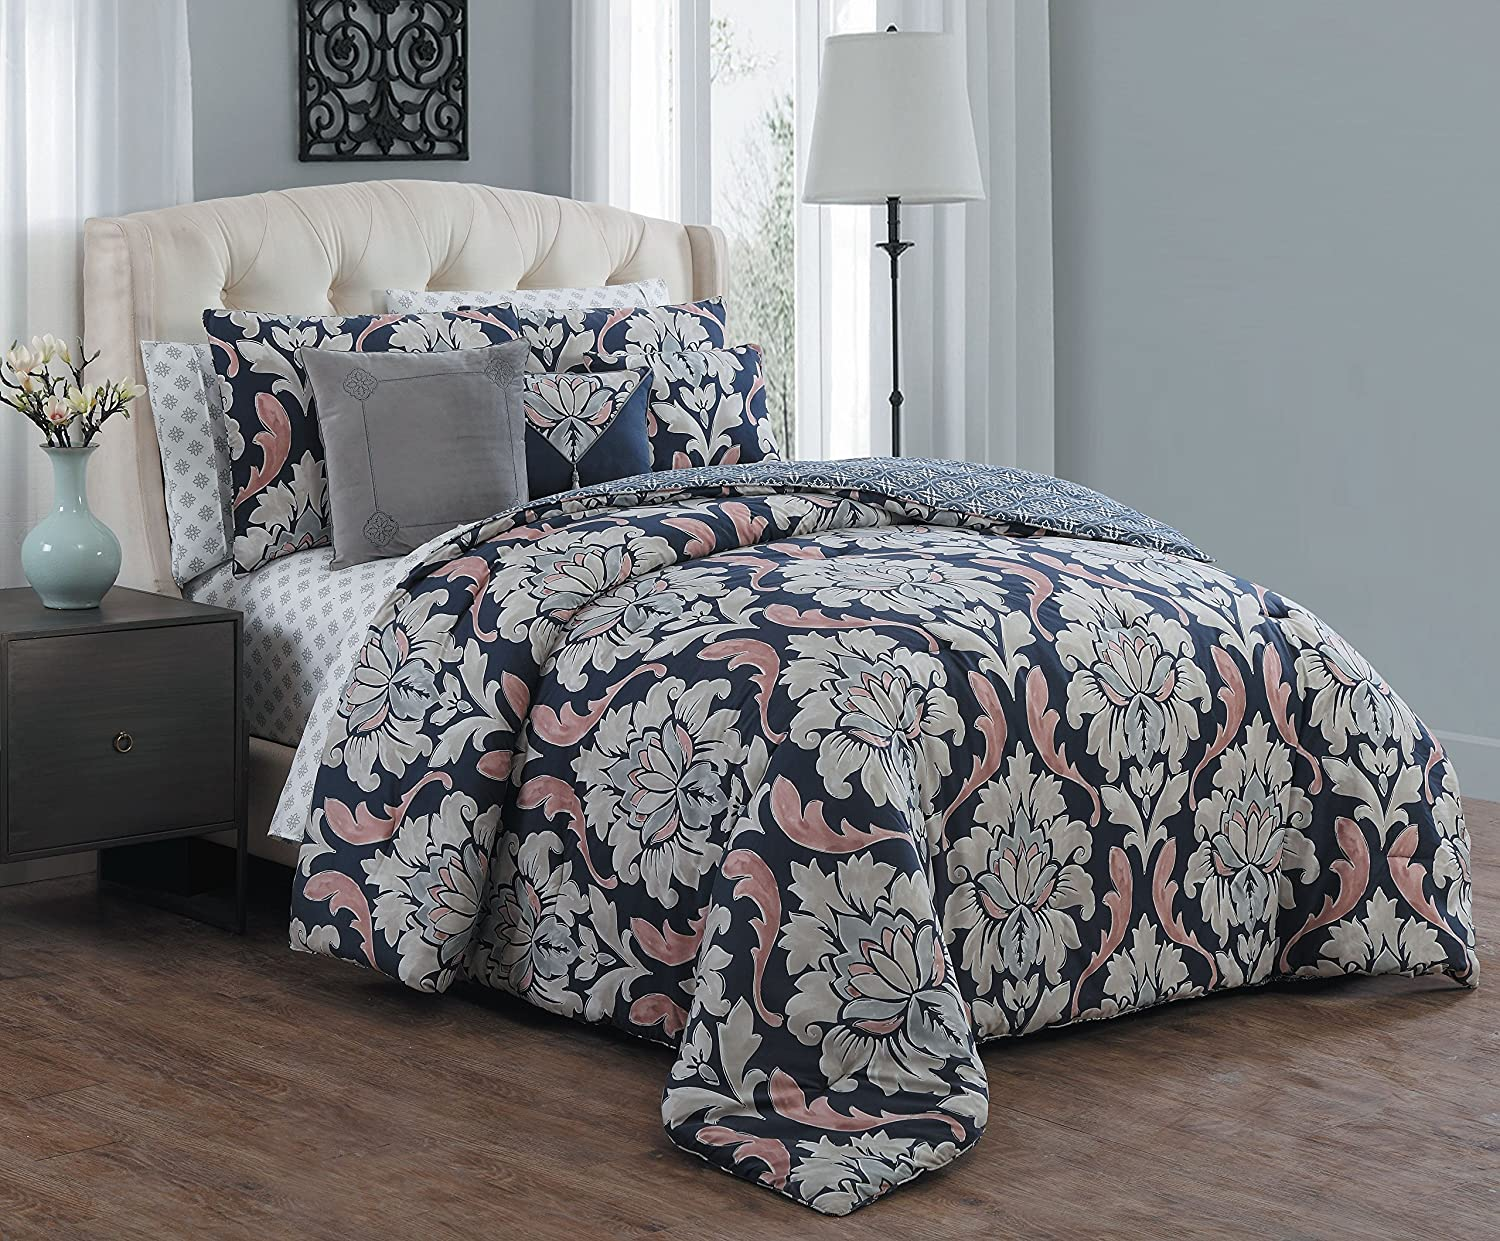 Avondale Manor Forte 10 Piece Bed in a Bag Set, King, Navy